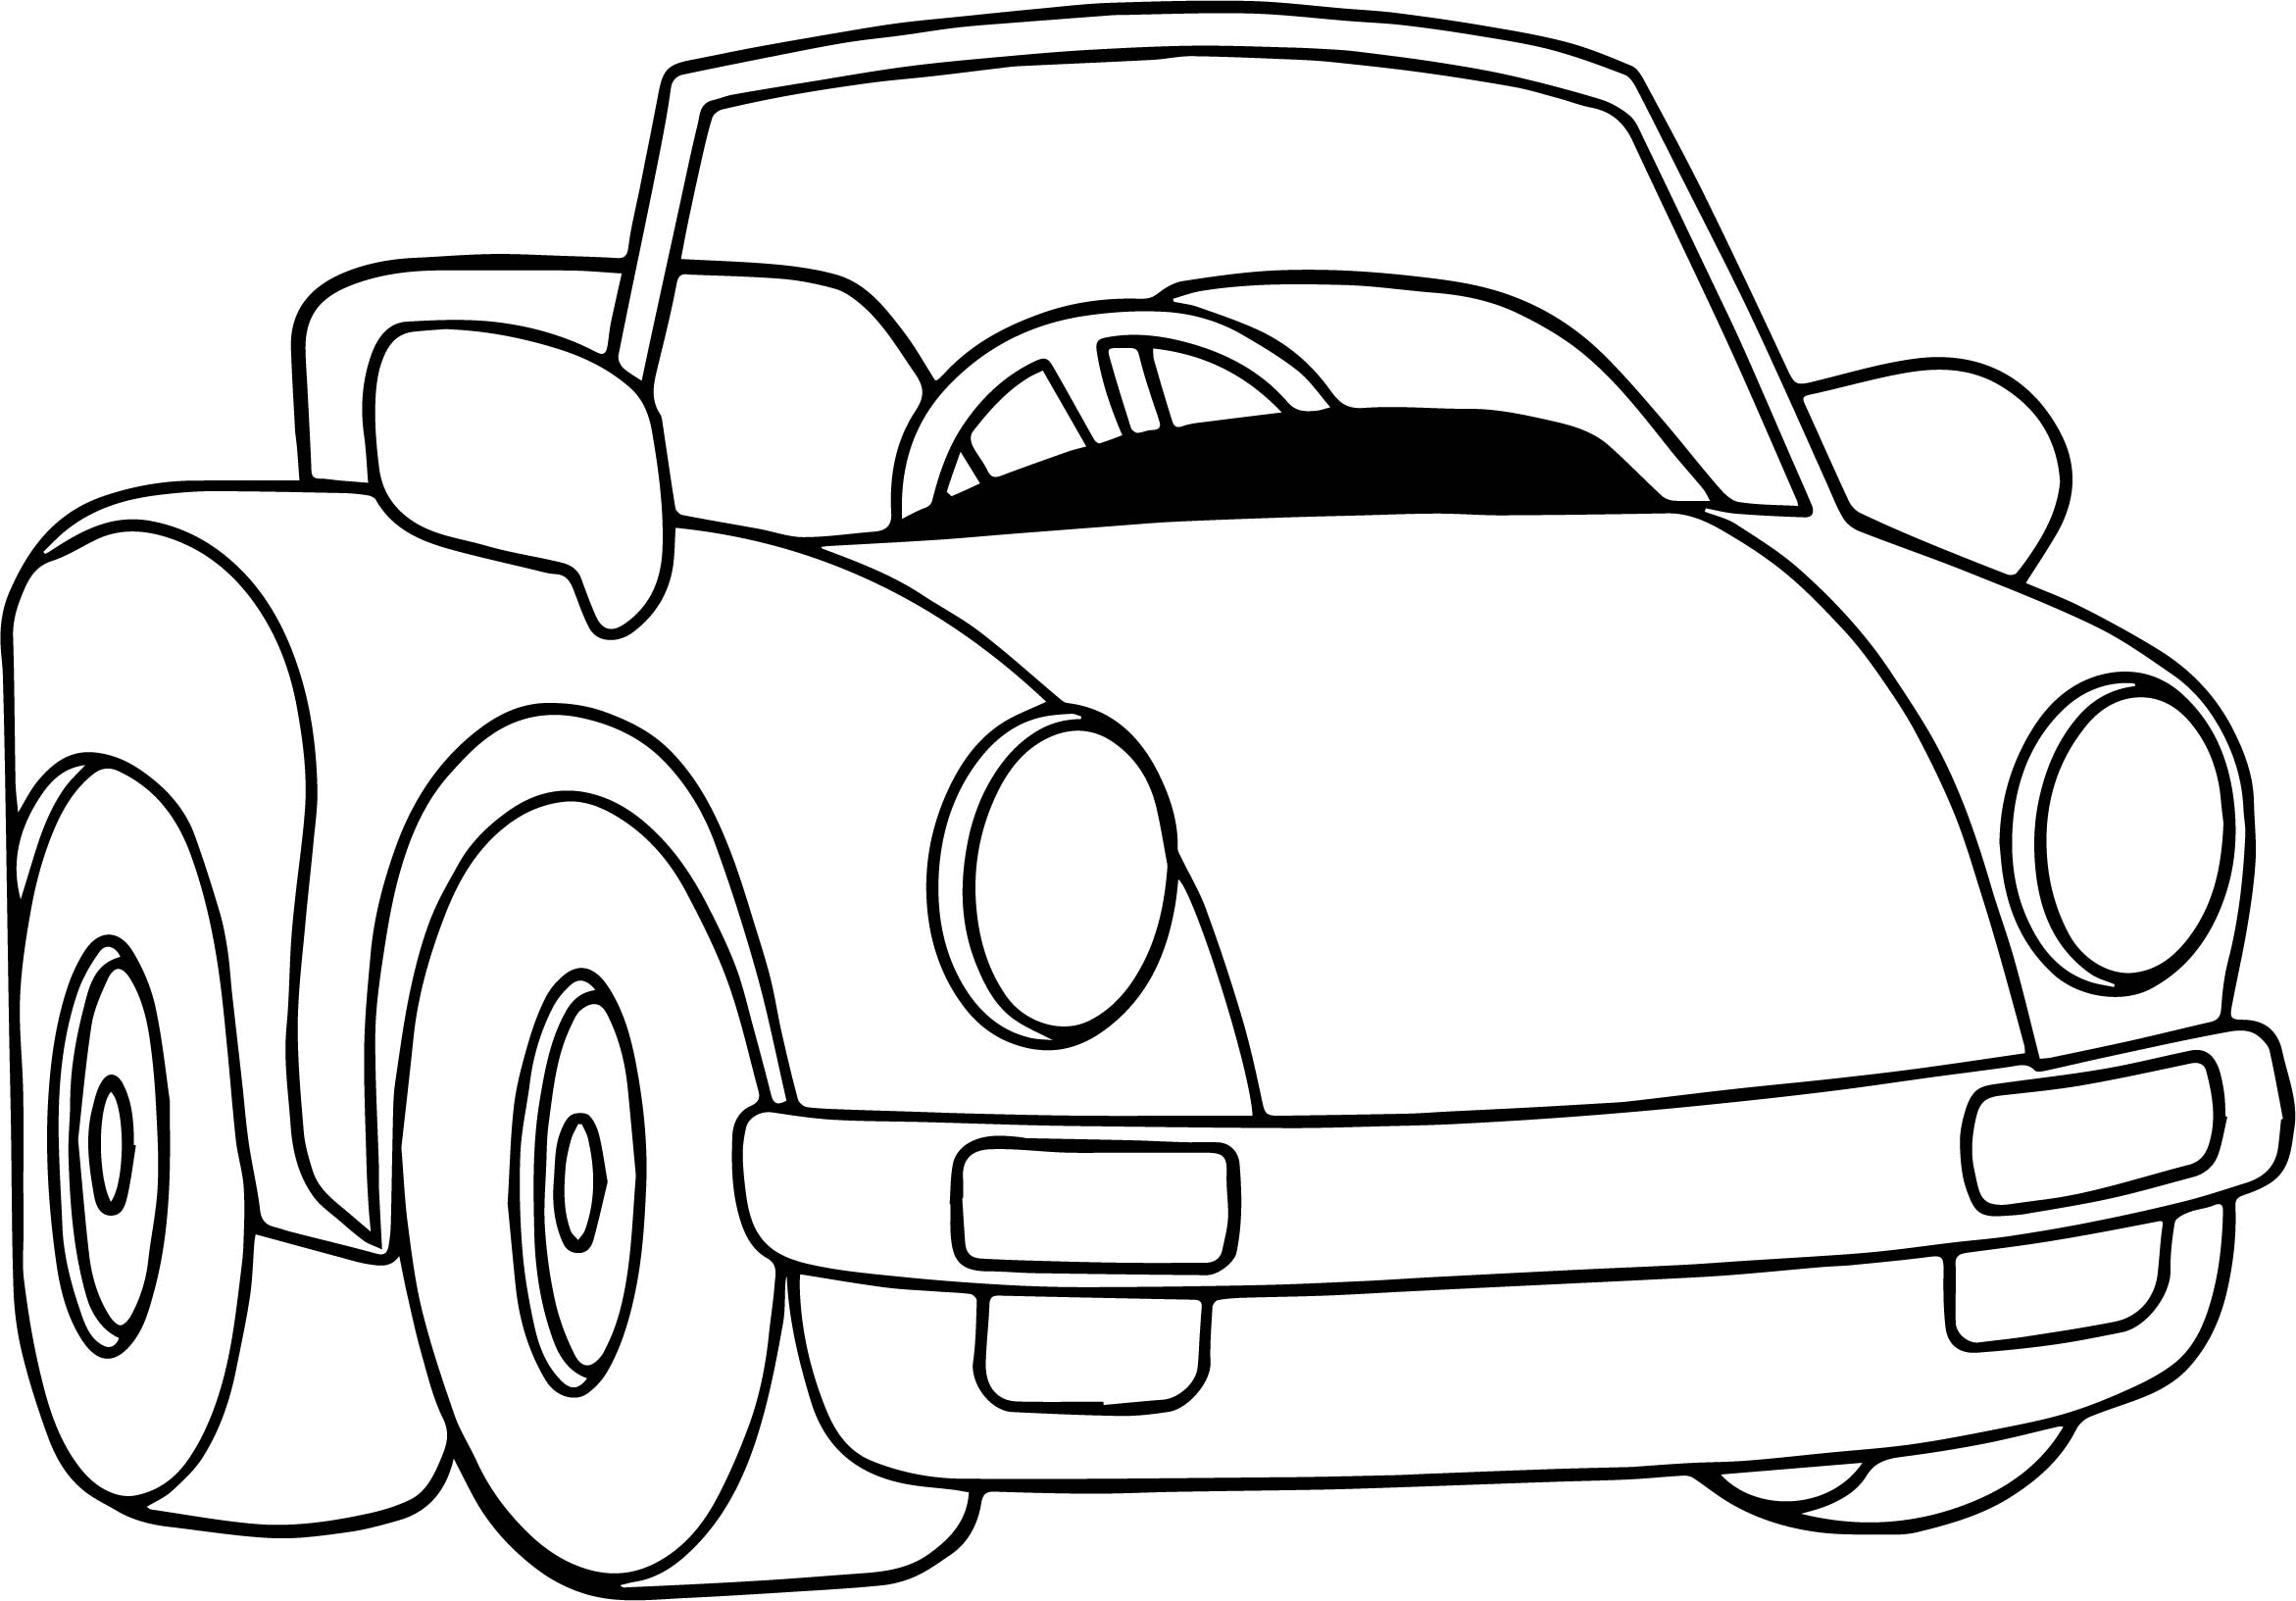 porsche colouring pages porsche coloring page at getdrawings free download colouring pages porsche